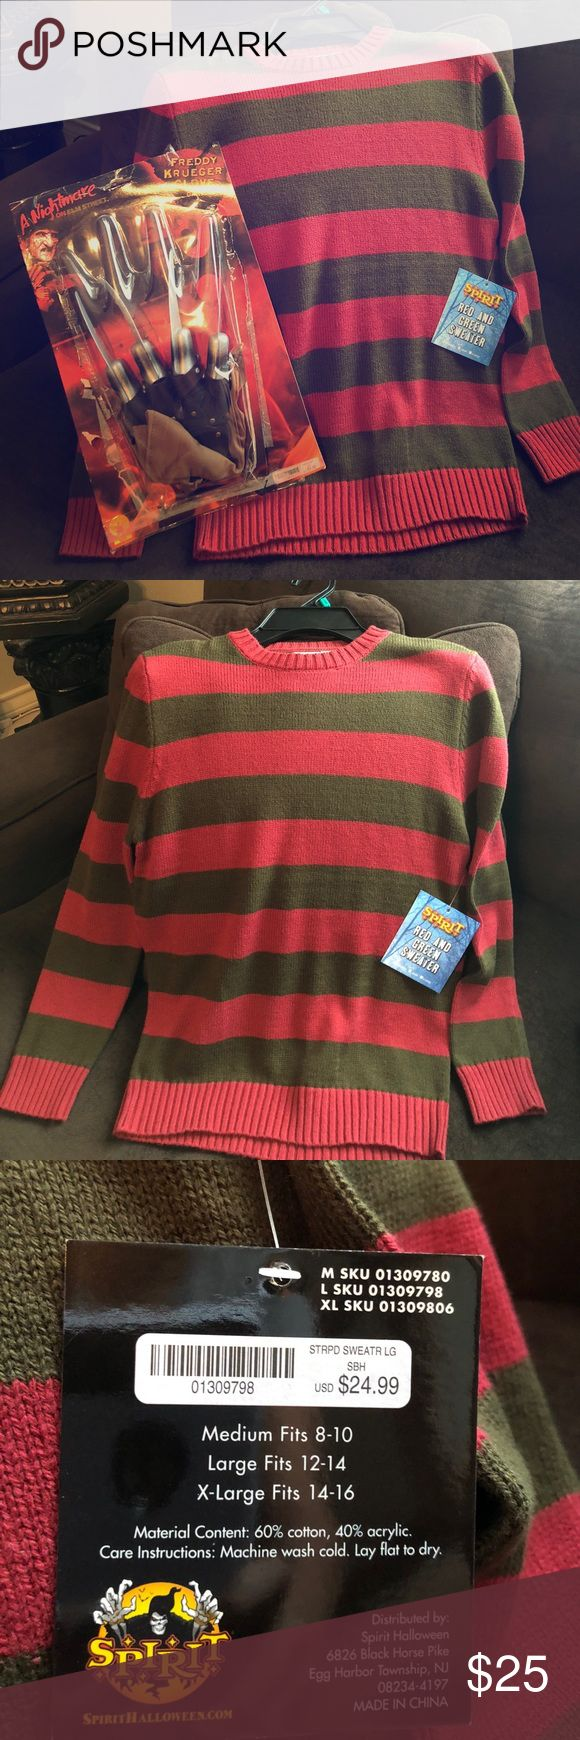 Freddy Krueger Costume Children Freddy Krueger's costume sweater and glove size child L (12/14) new with tags glove is also new never worn. my son want it but then changed his mind. We only opened the glove but it's new I got both items Separately at Halloween Spirit store. Only one glove! That's the way it comes with one. spirit Costumes Halloween